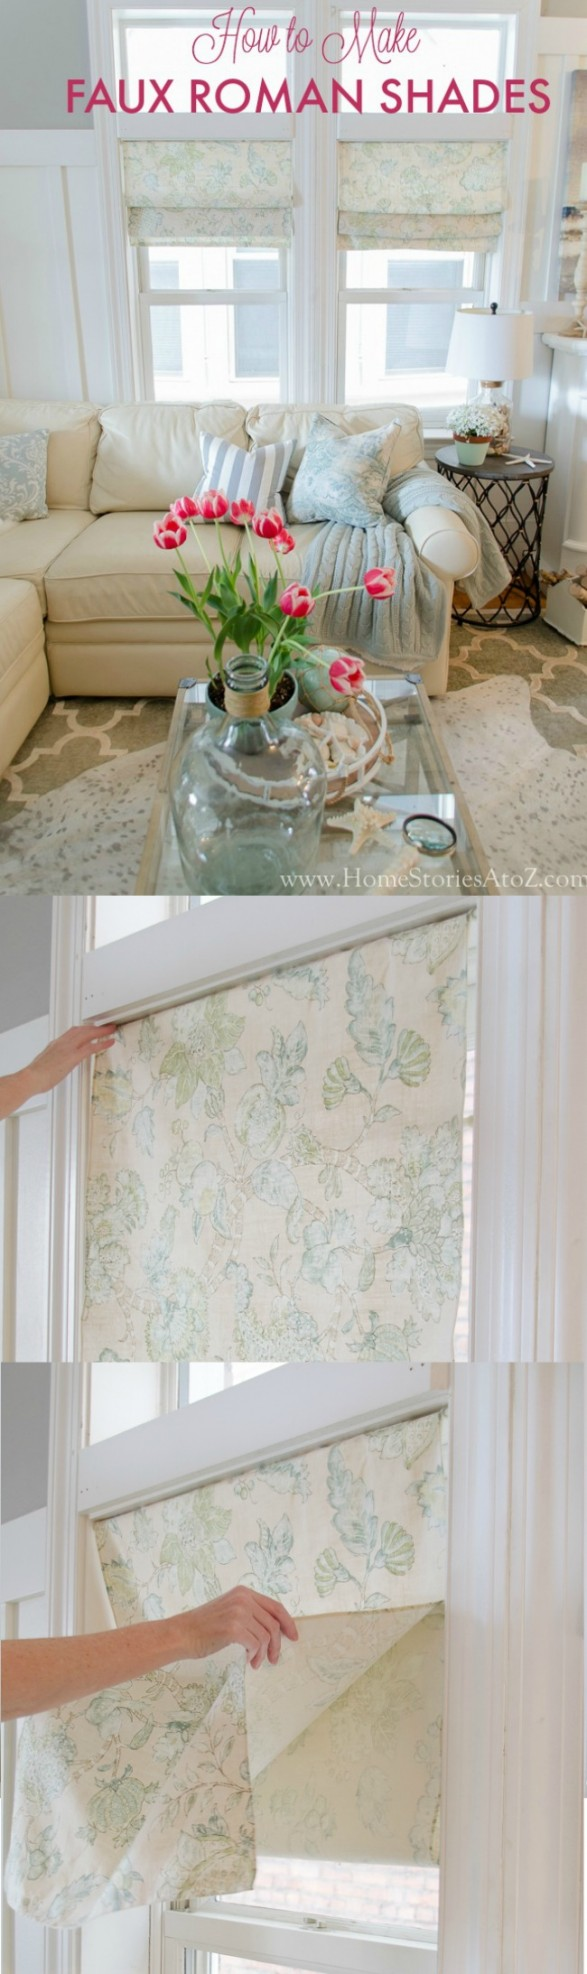 Diy Roman Shades Easy How To Make Faux Roman Shades